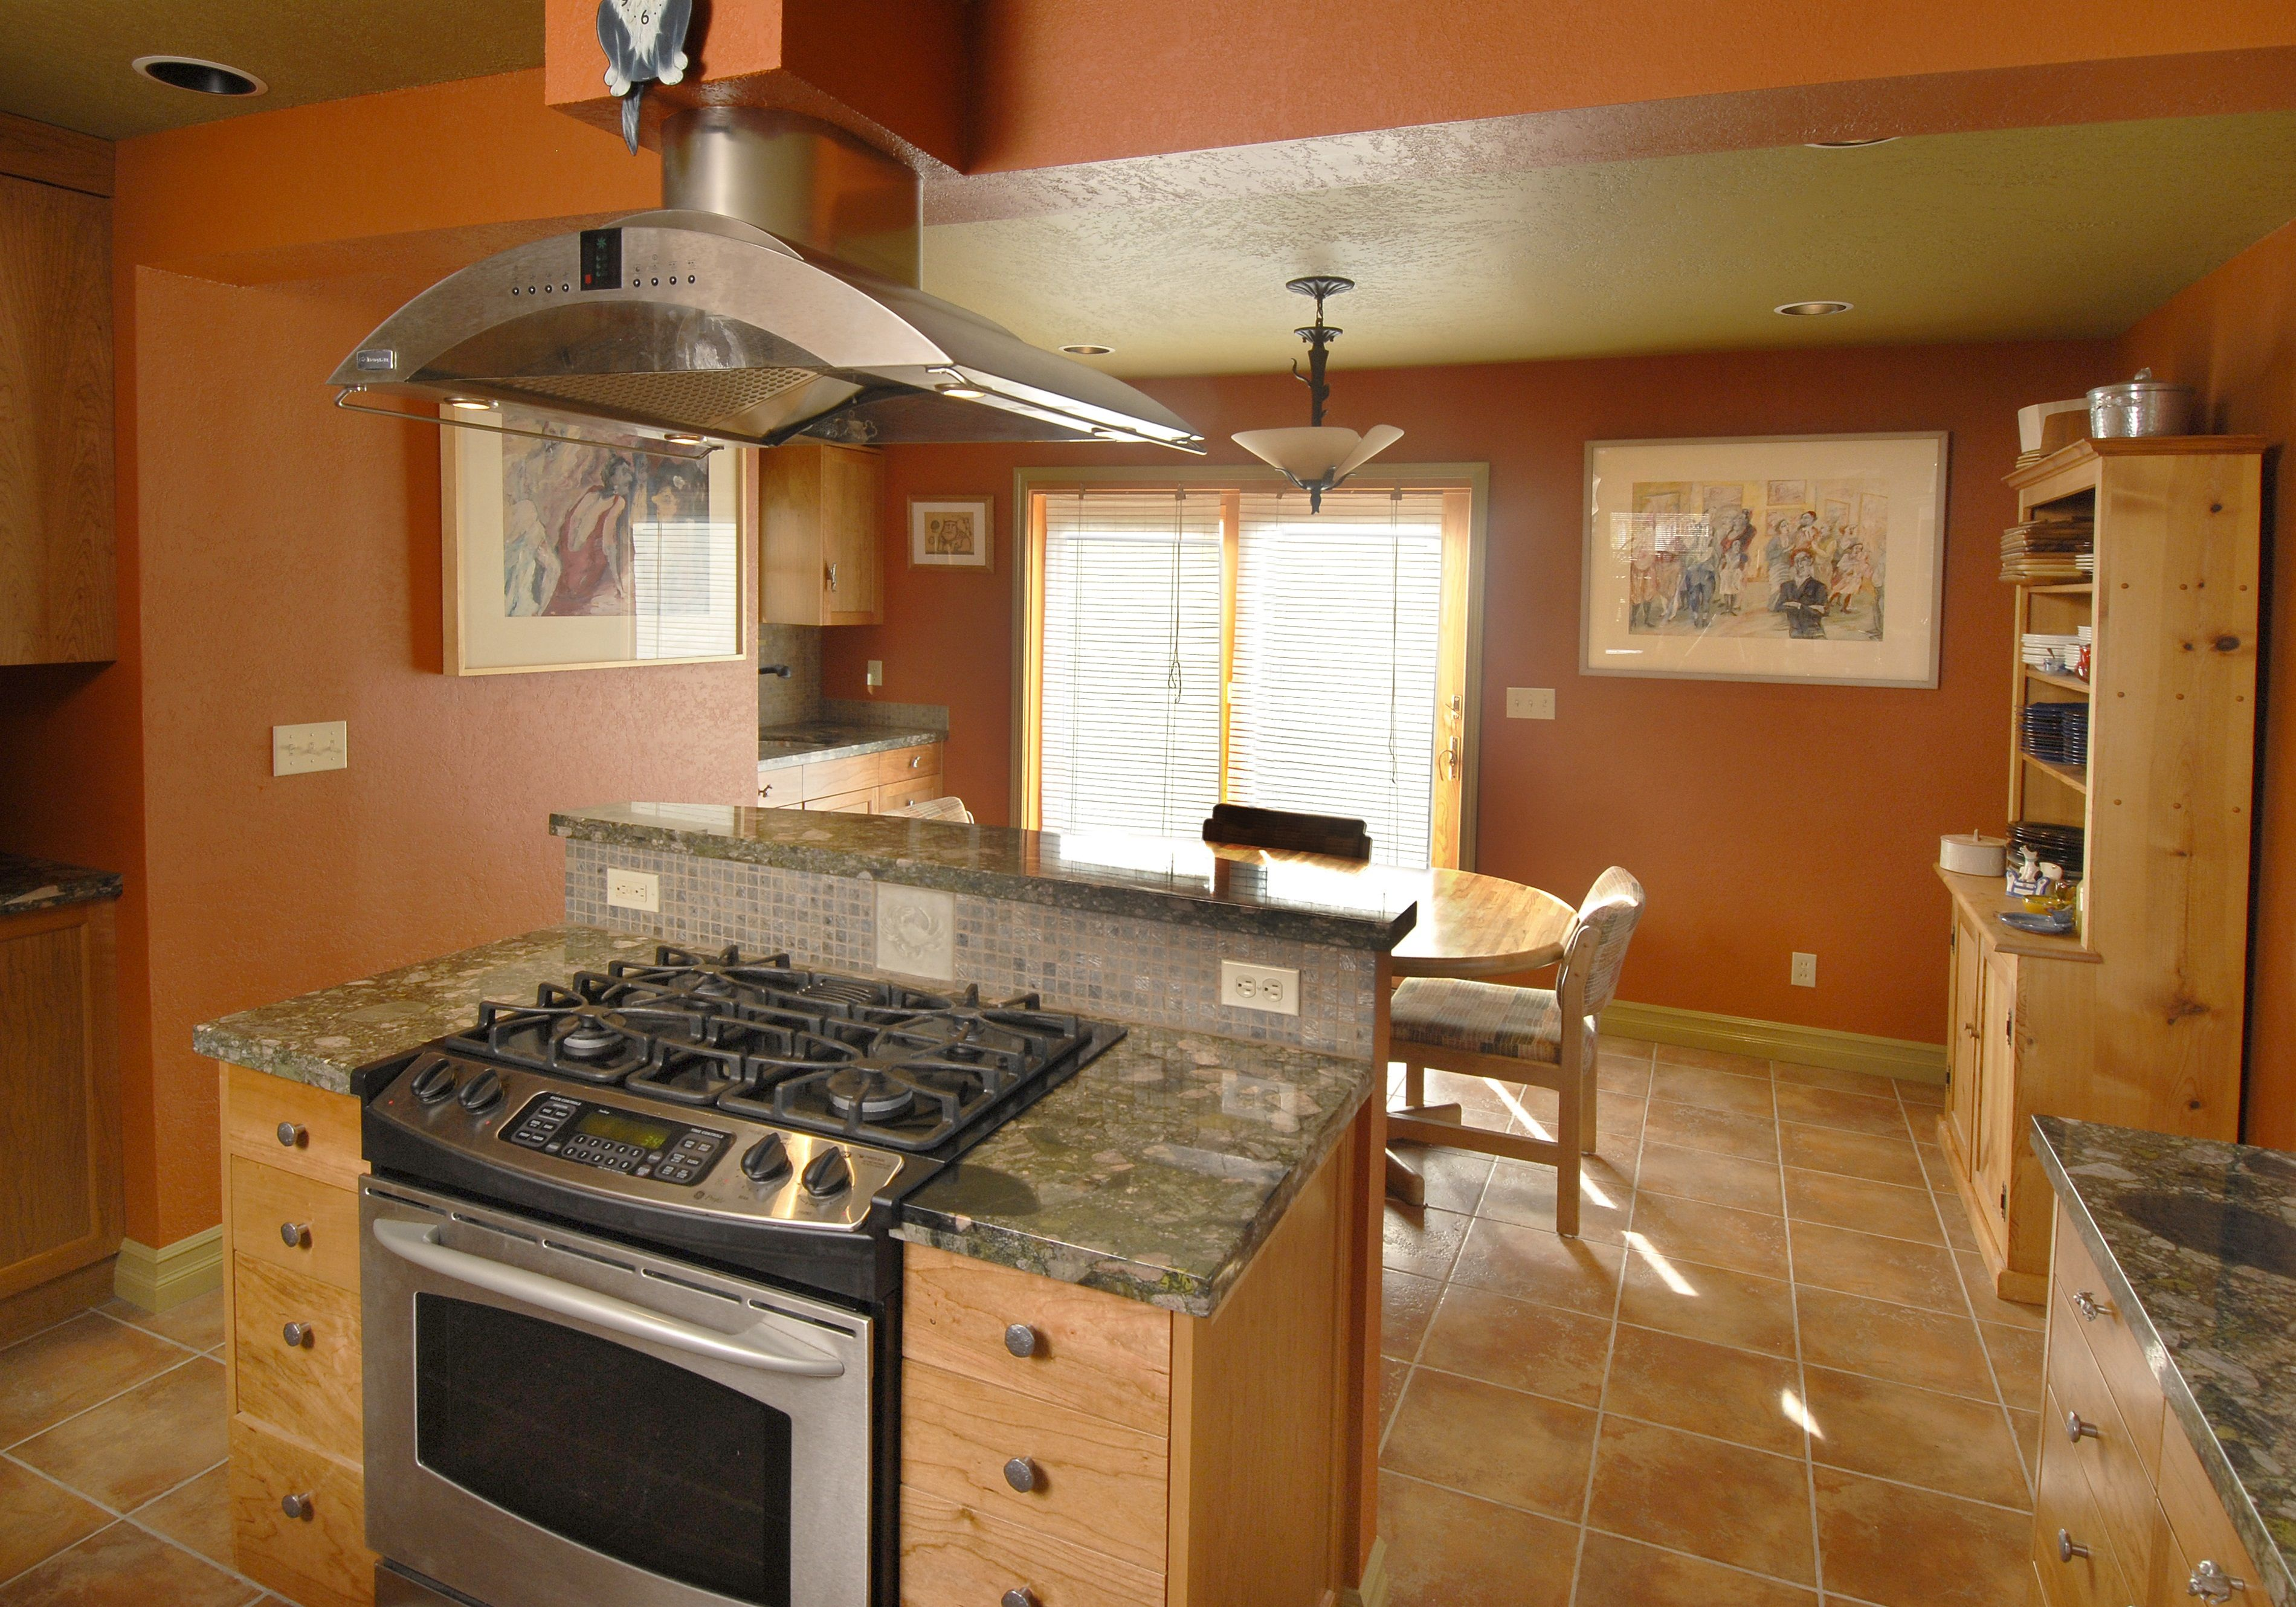 kitchen island with stove and seating for some a fully functional kitchen island is a more appealing and convenience option allowing 9032